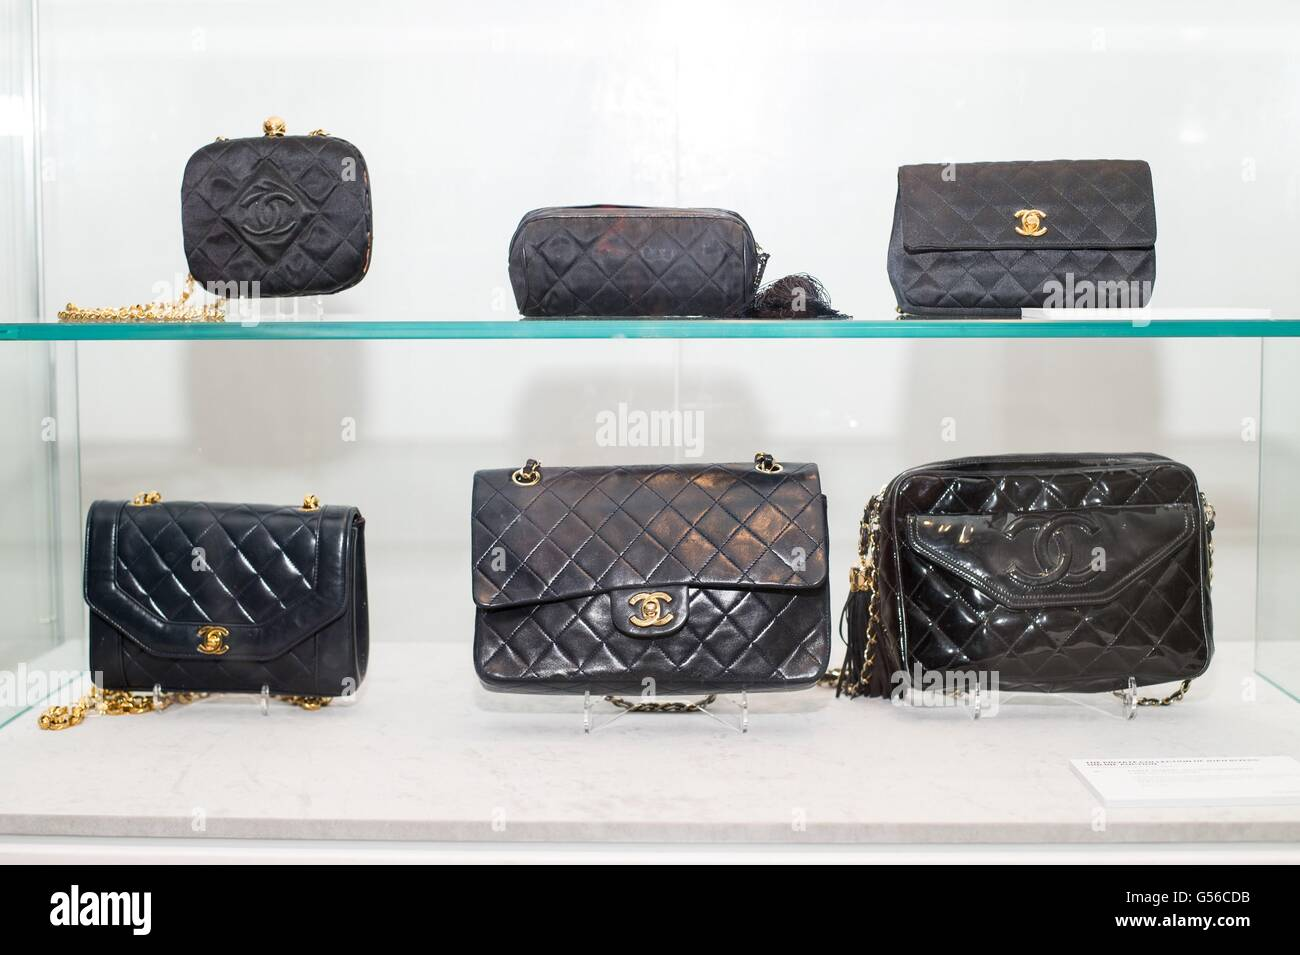 02b1497c1db4 THREE CHANEL BLACK QUILTED SATIN EVENING BAGS LATE 20TH CENTURY Comprising:  a square clutch with gold hardware, gold leather interior and gold chain ...